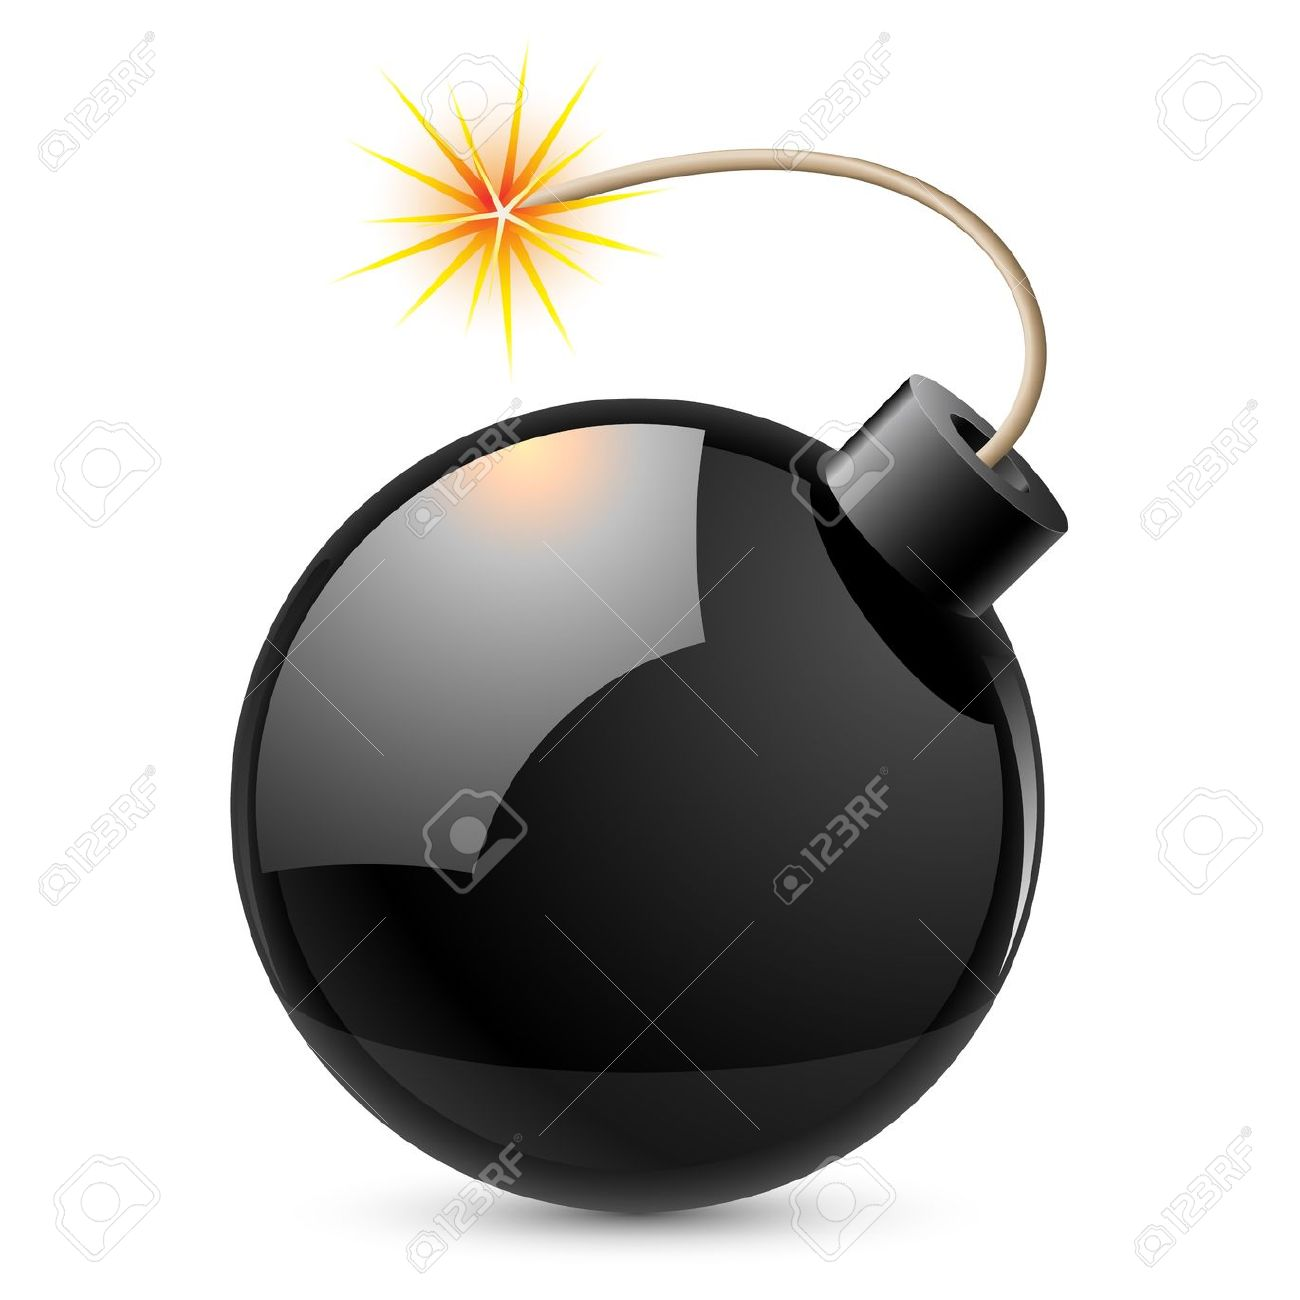 10233469-Cartoon-bomb-Illustration-on-white-background-Stock-Vector-explosion.jpg